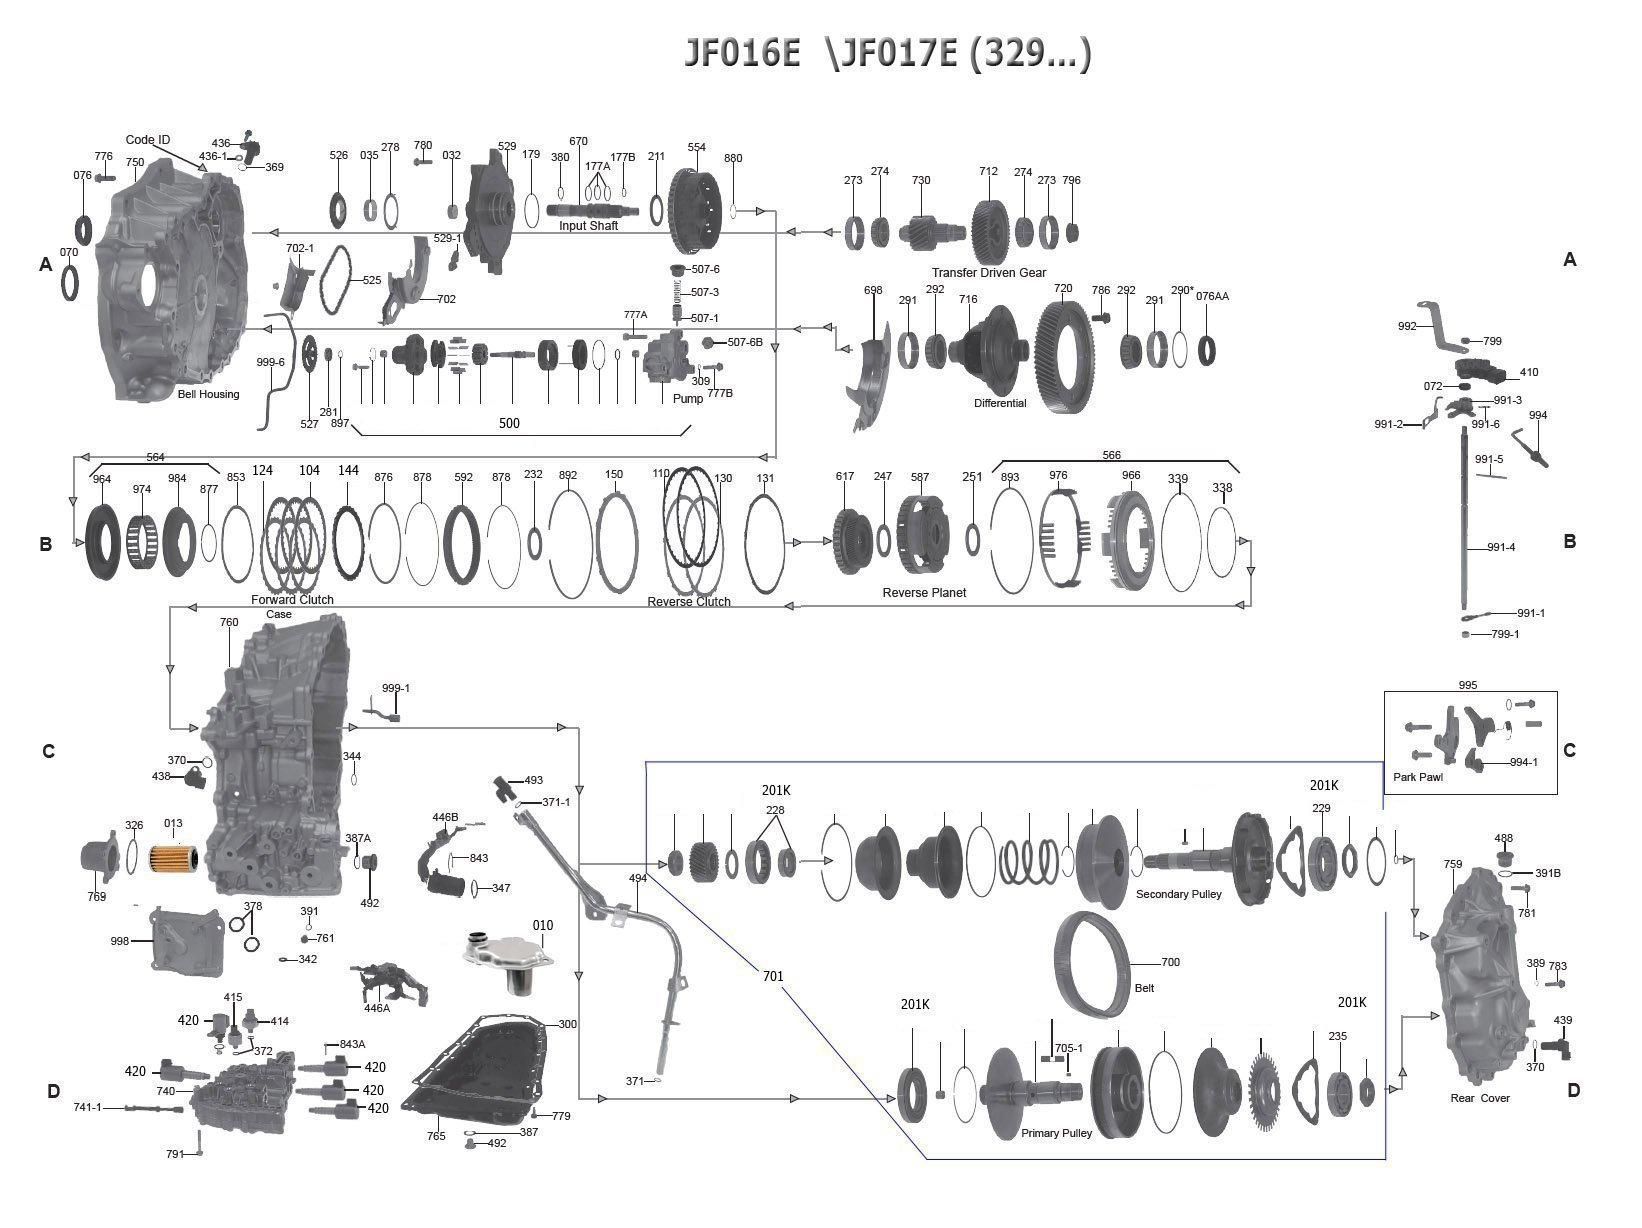 JF018E Transmission parts, repair guidelines, problems